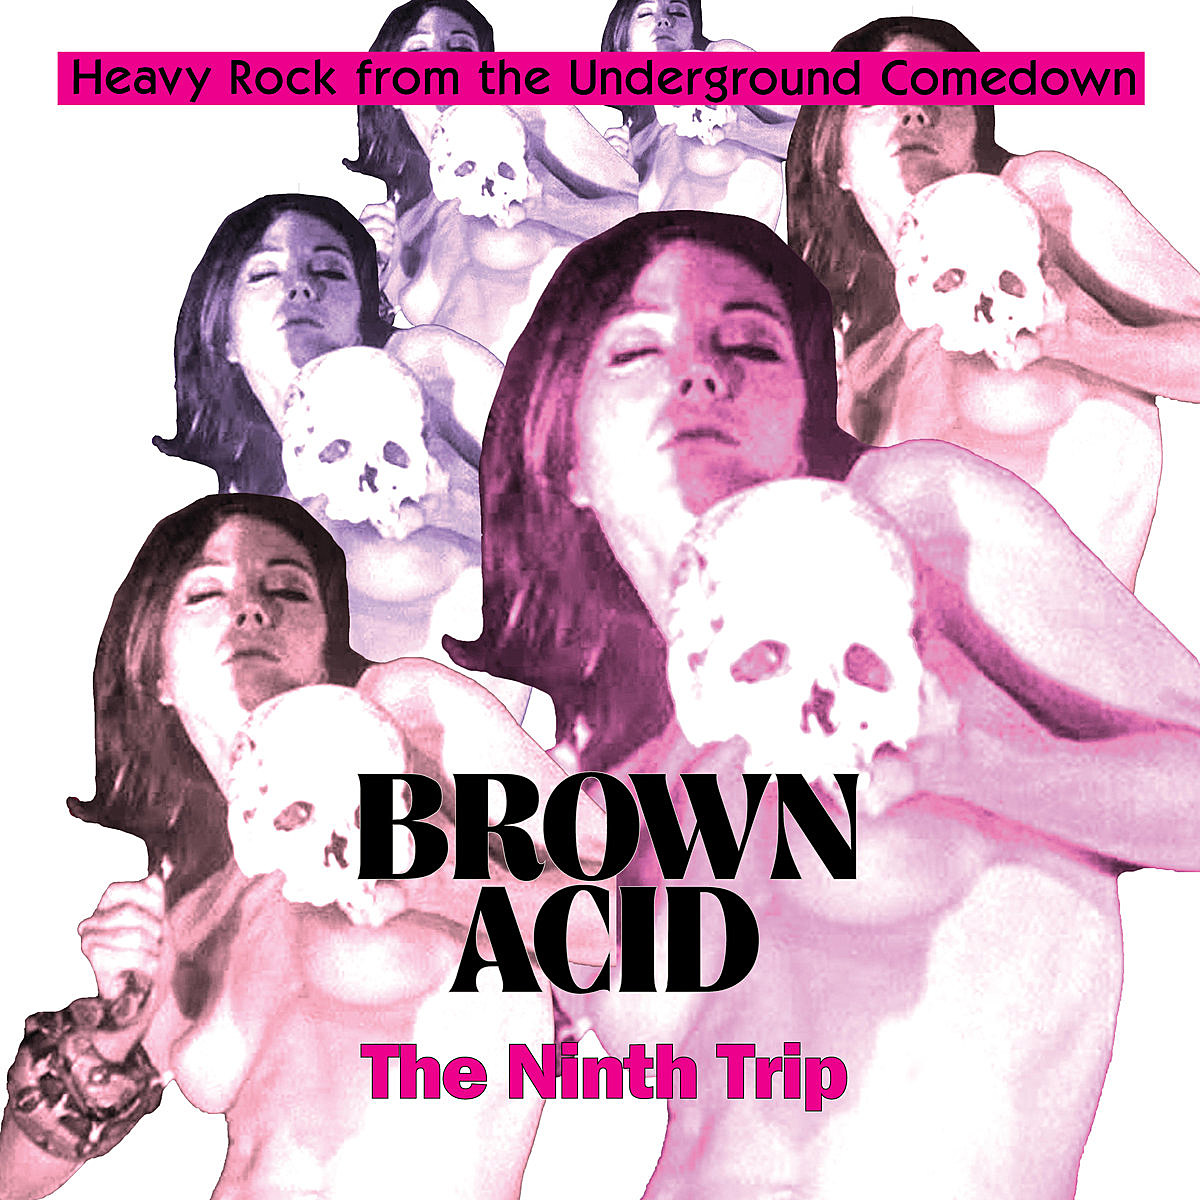 Brown Acid 9